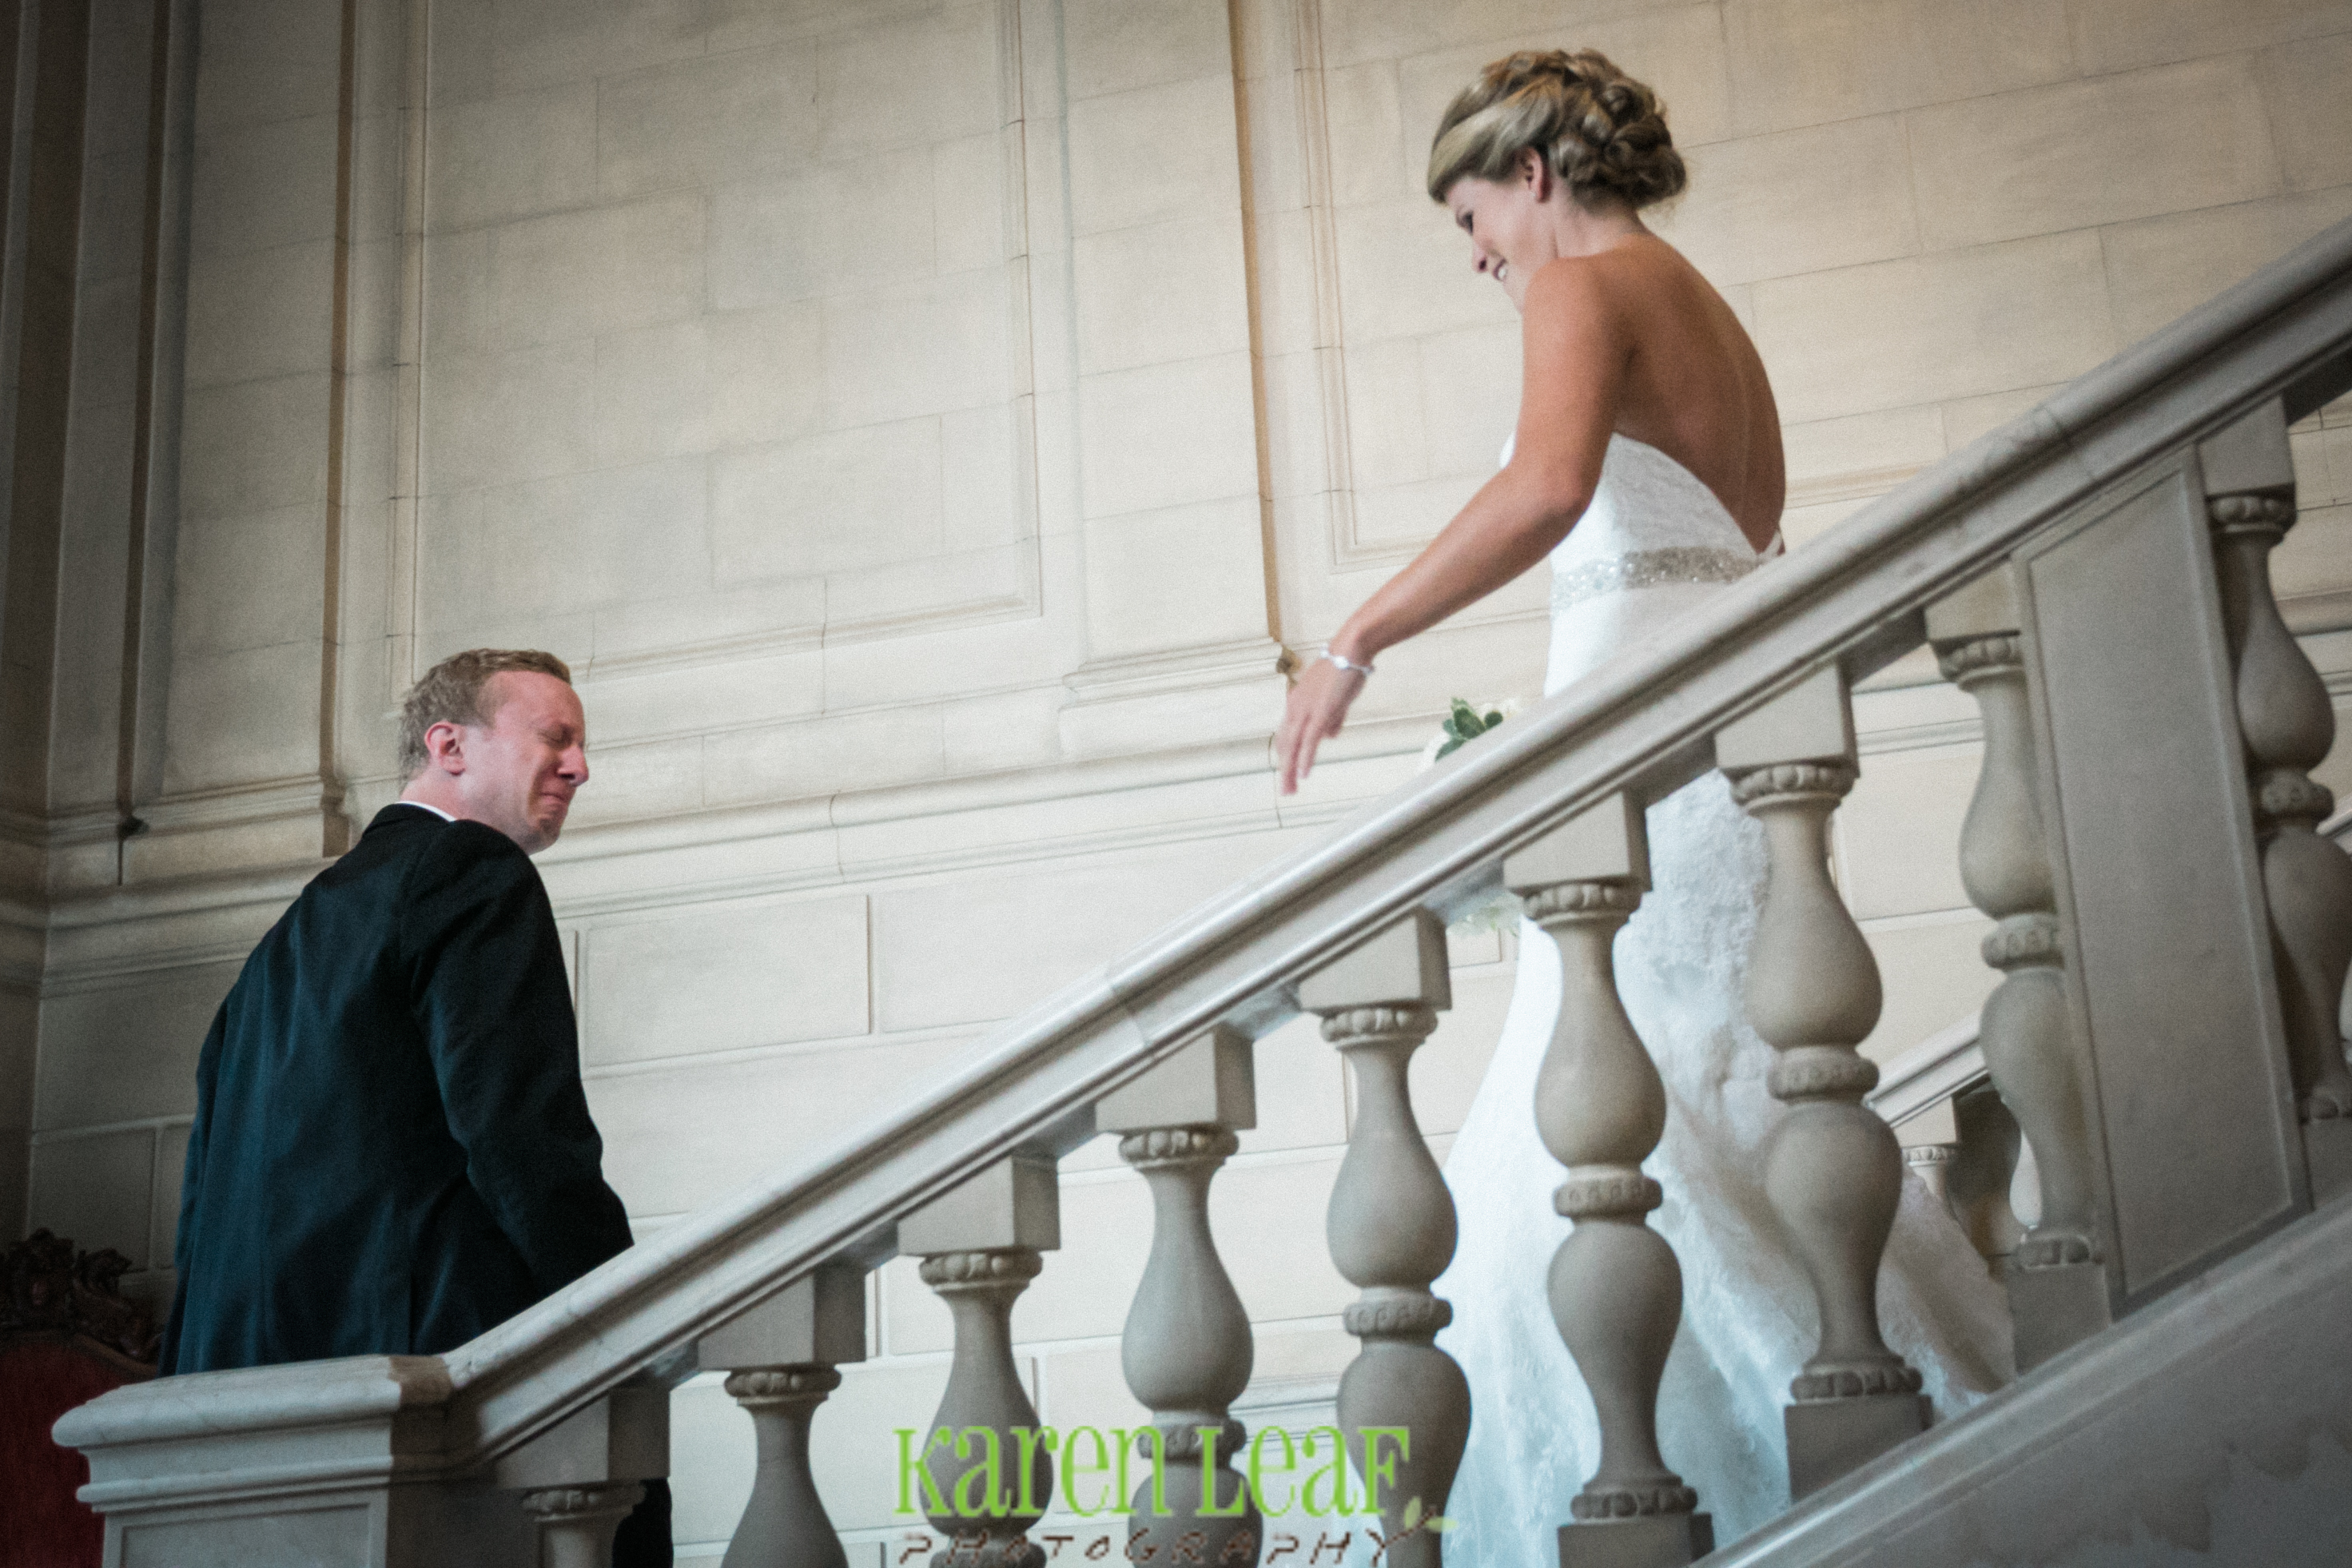 Raw emotion as the groom sees his bride